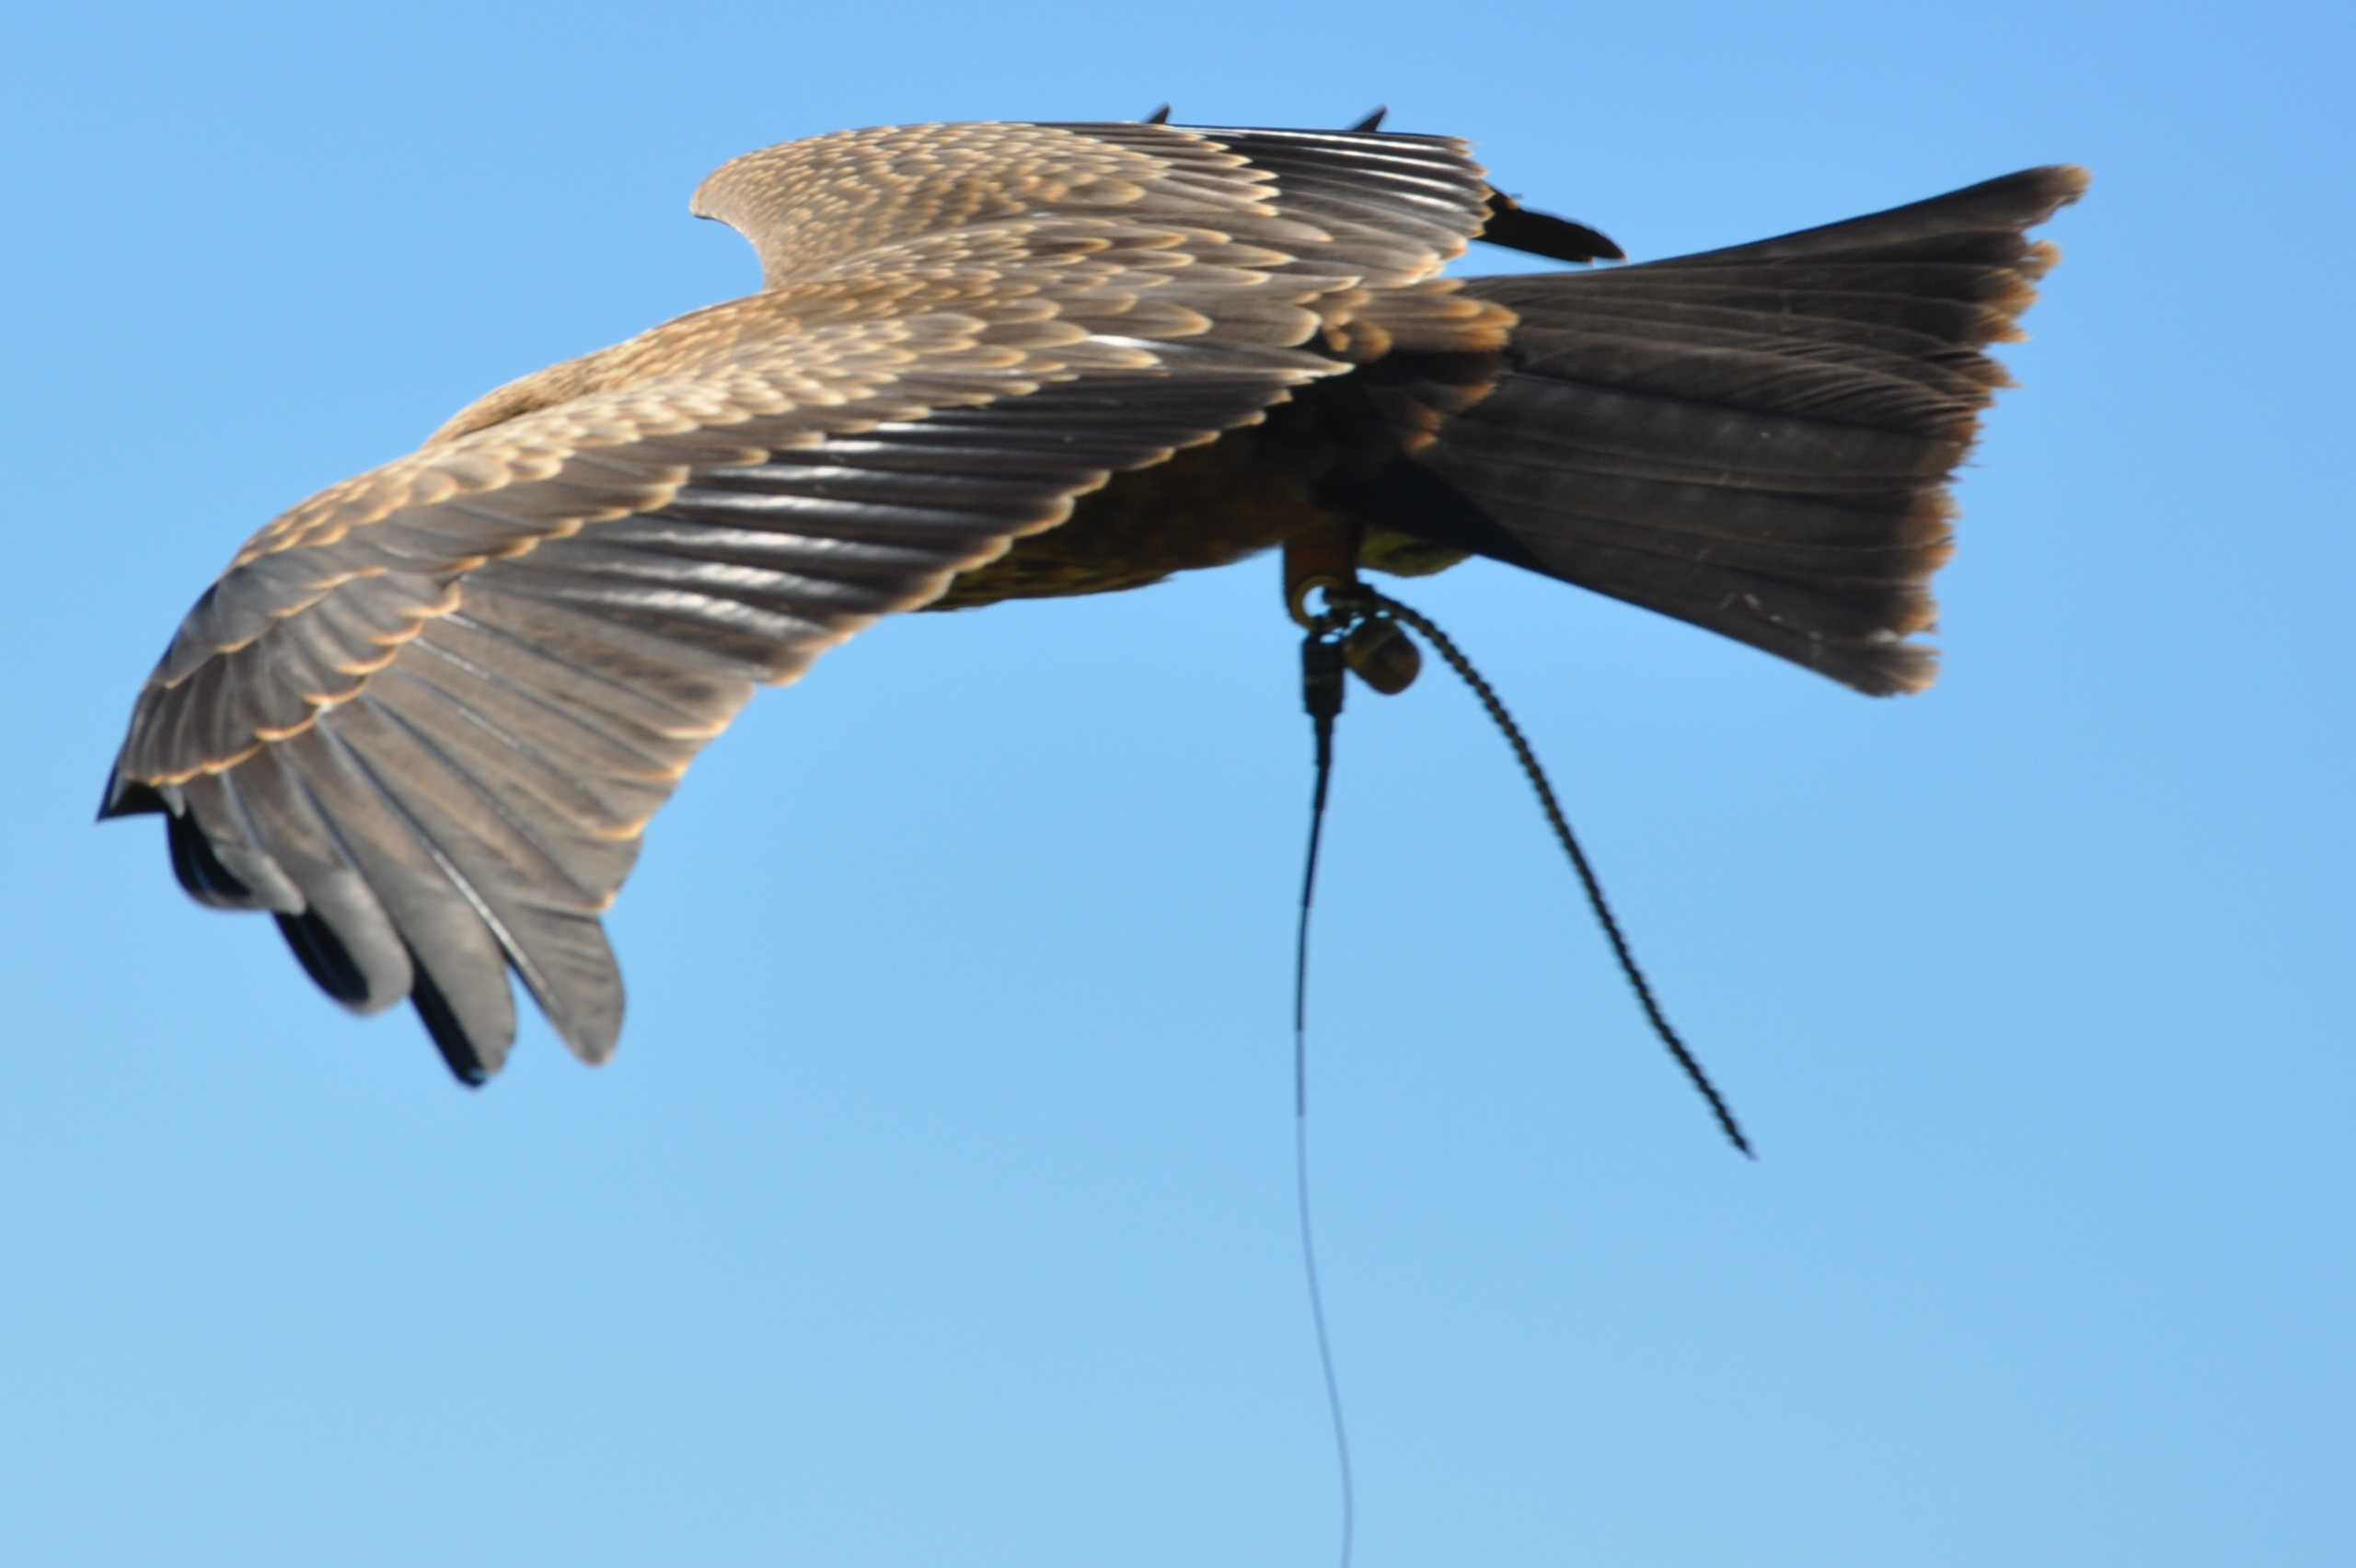 Bird of prey experiences ~ Flying our Kites! | East Sussex Falconry